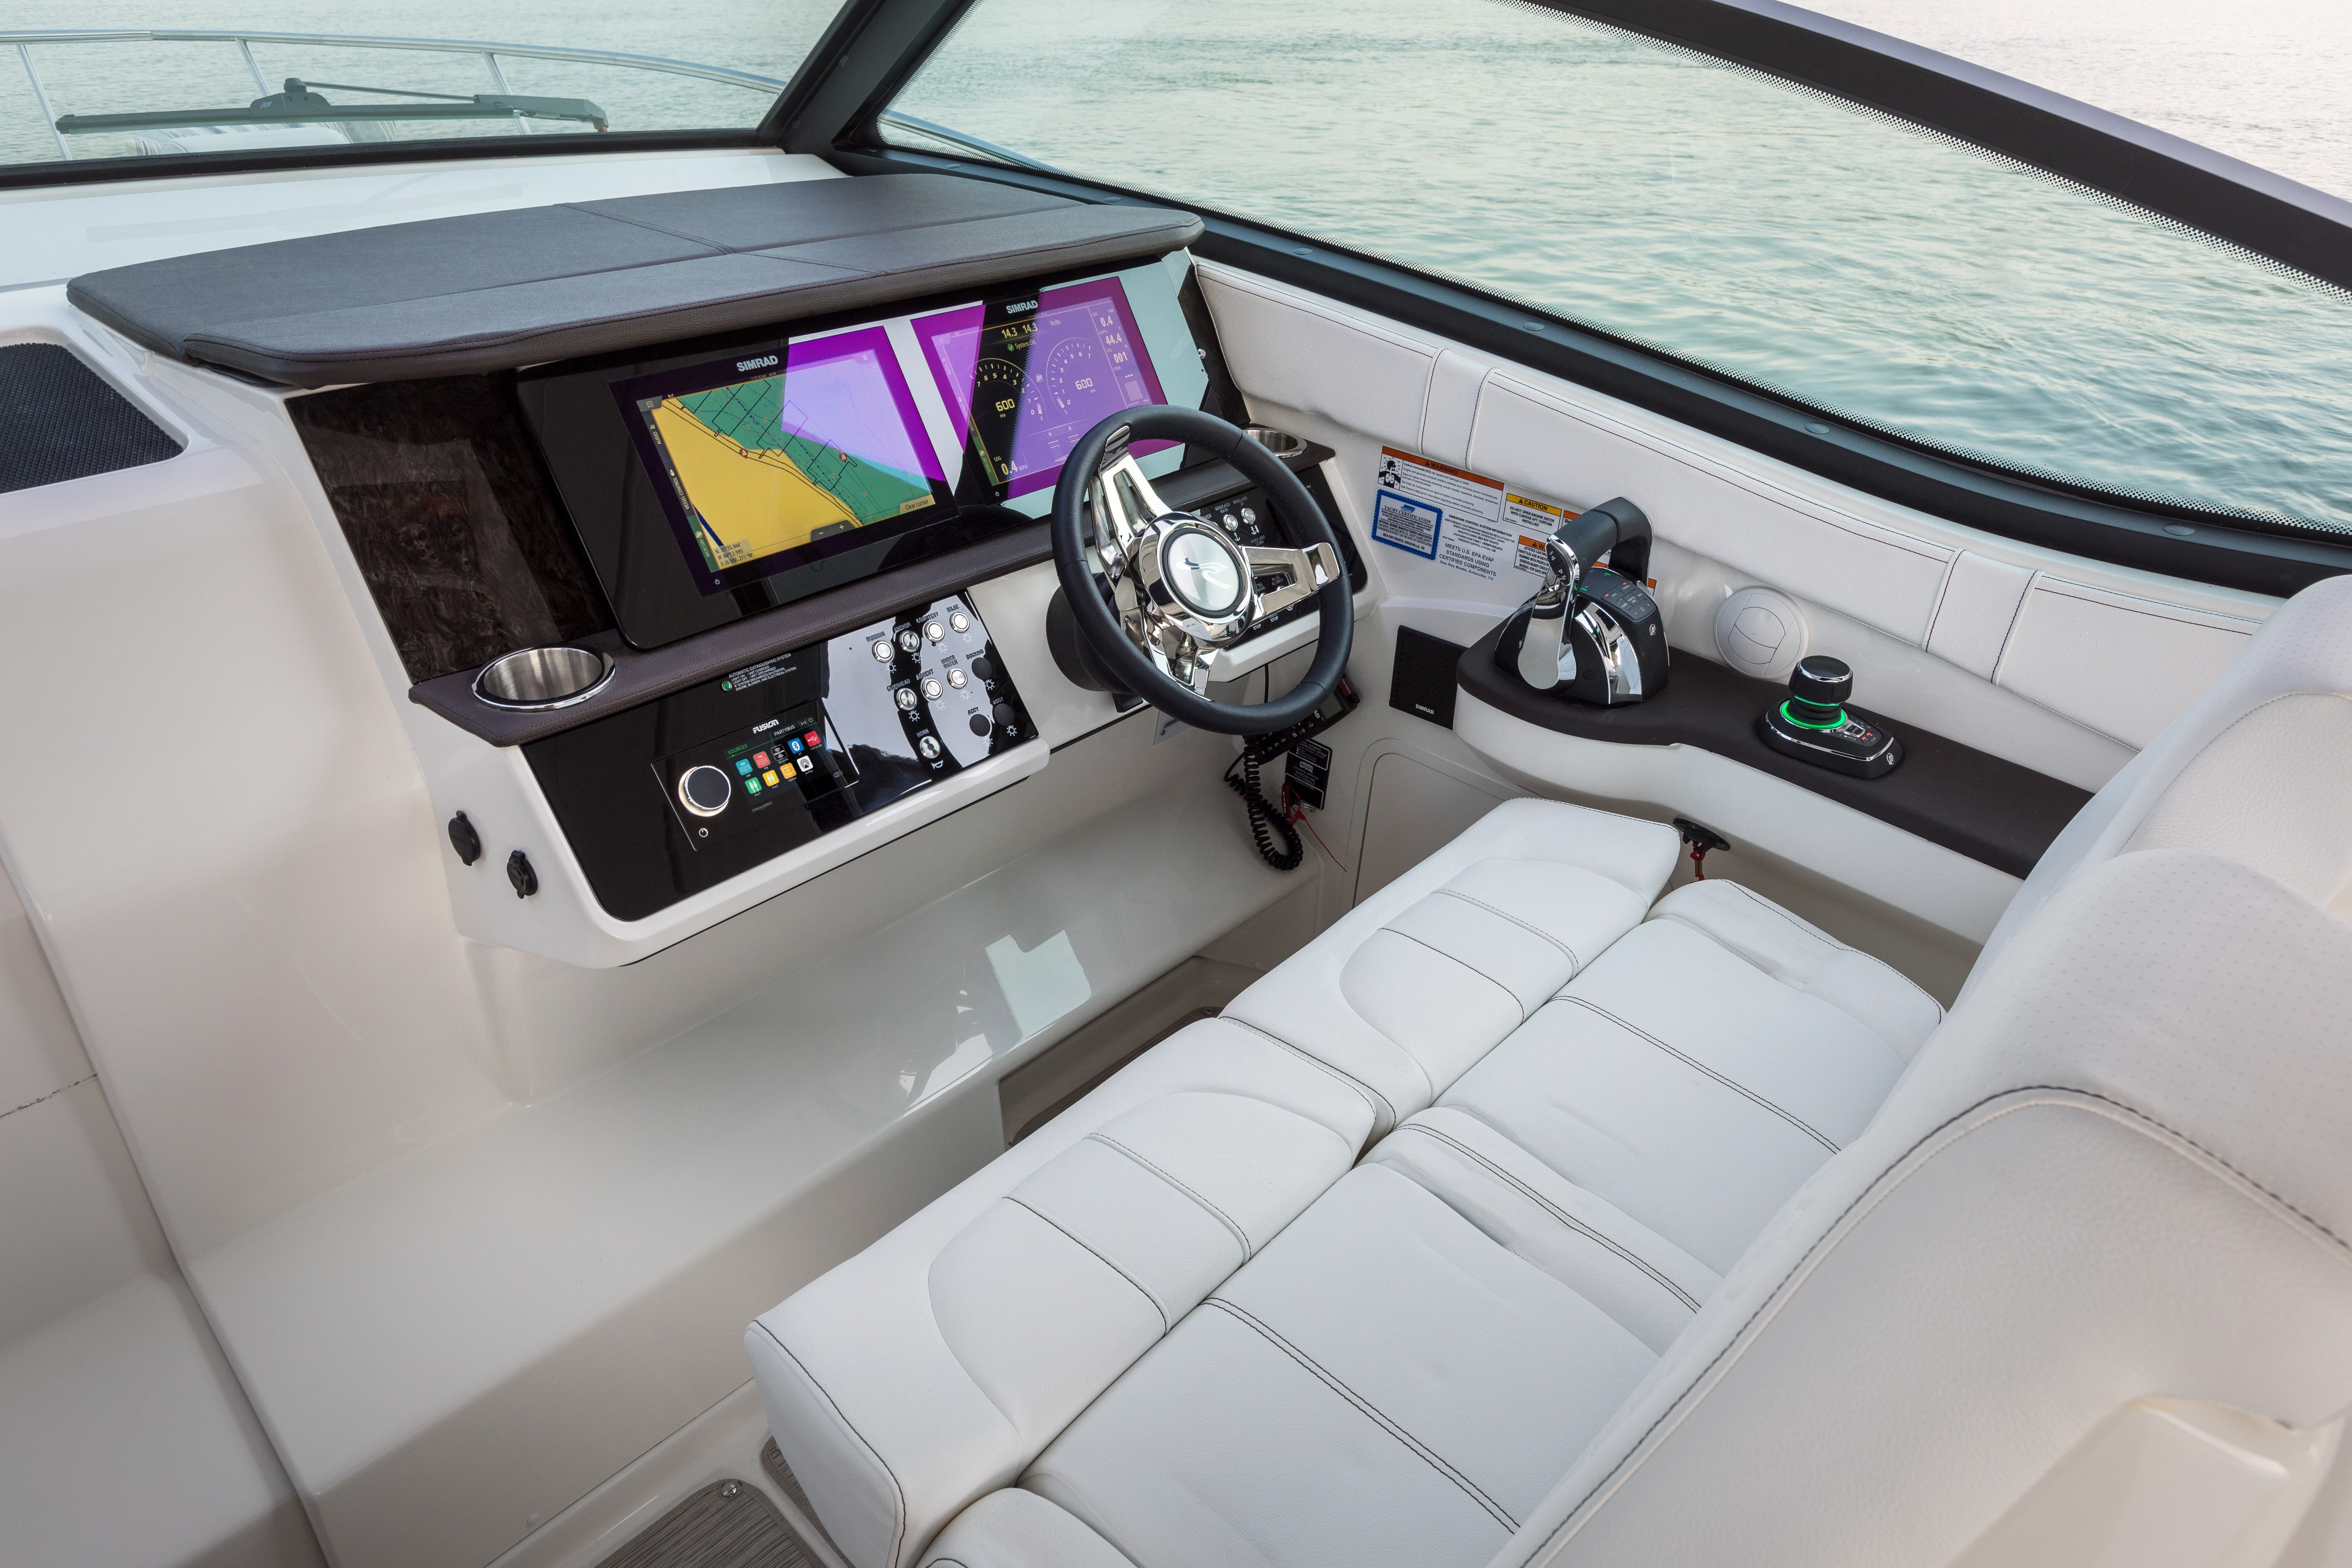 2021 Sea Ray boat for sale, model of the boat is 320 Sundancer & Image # 6 of 24